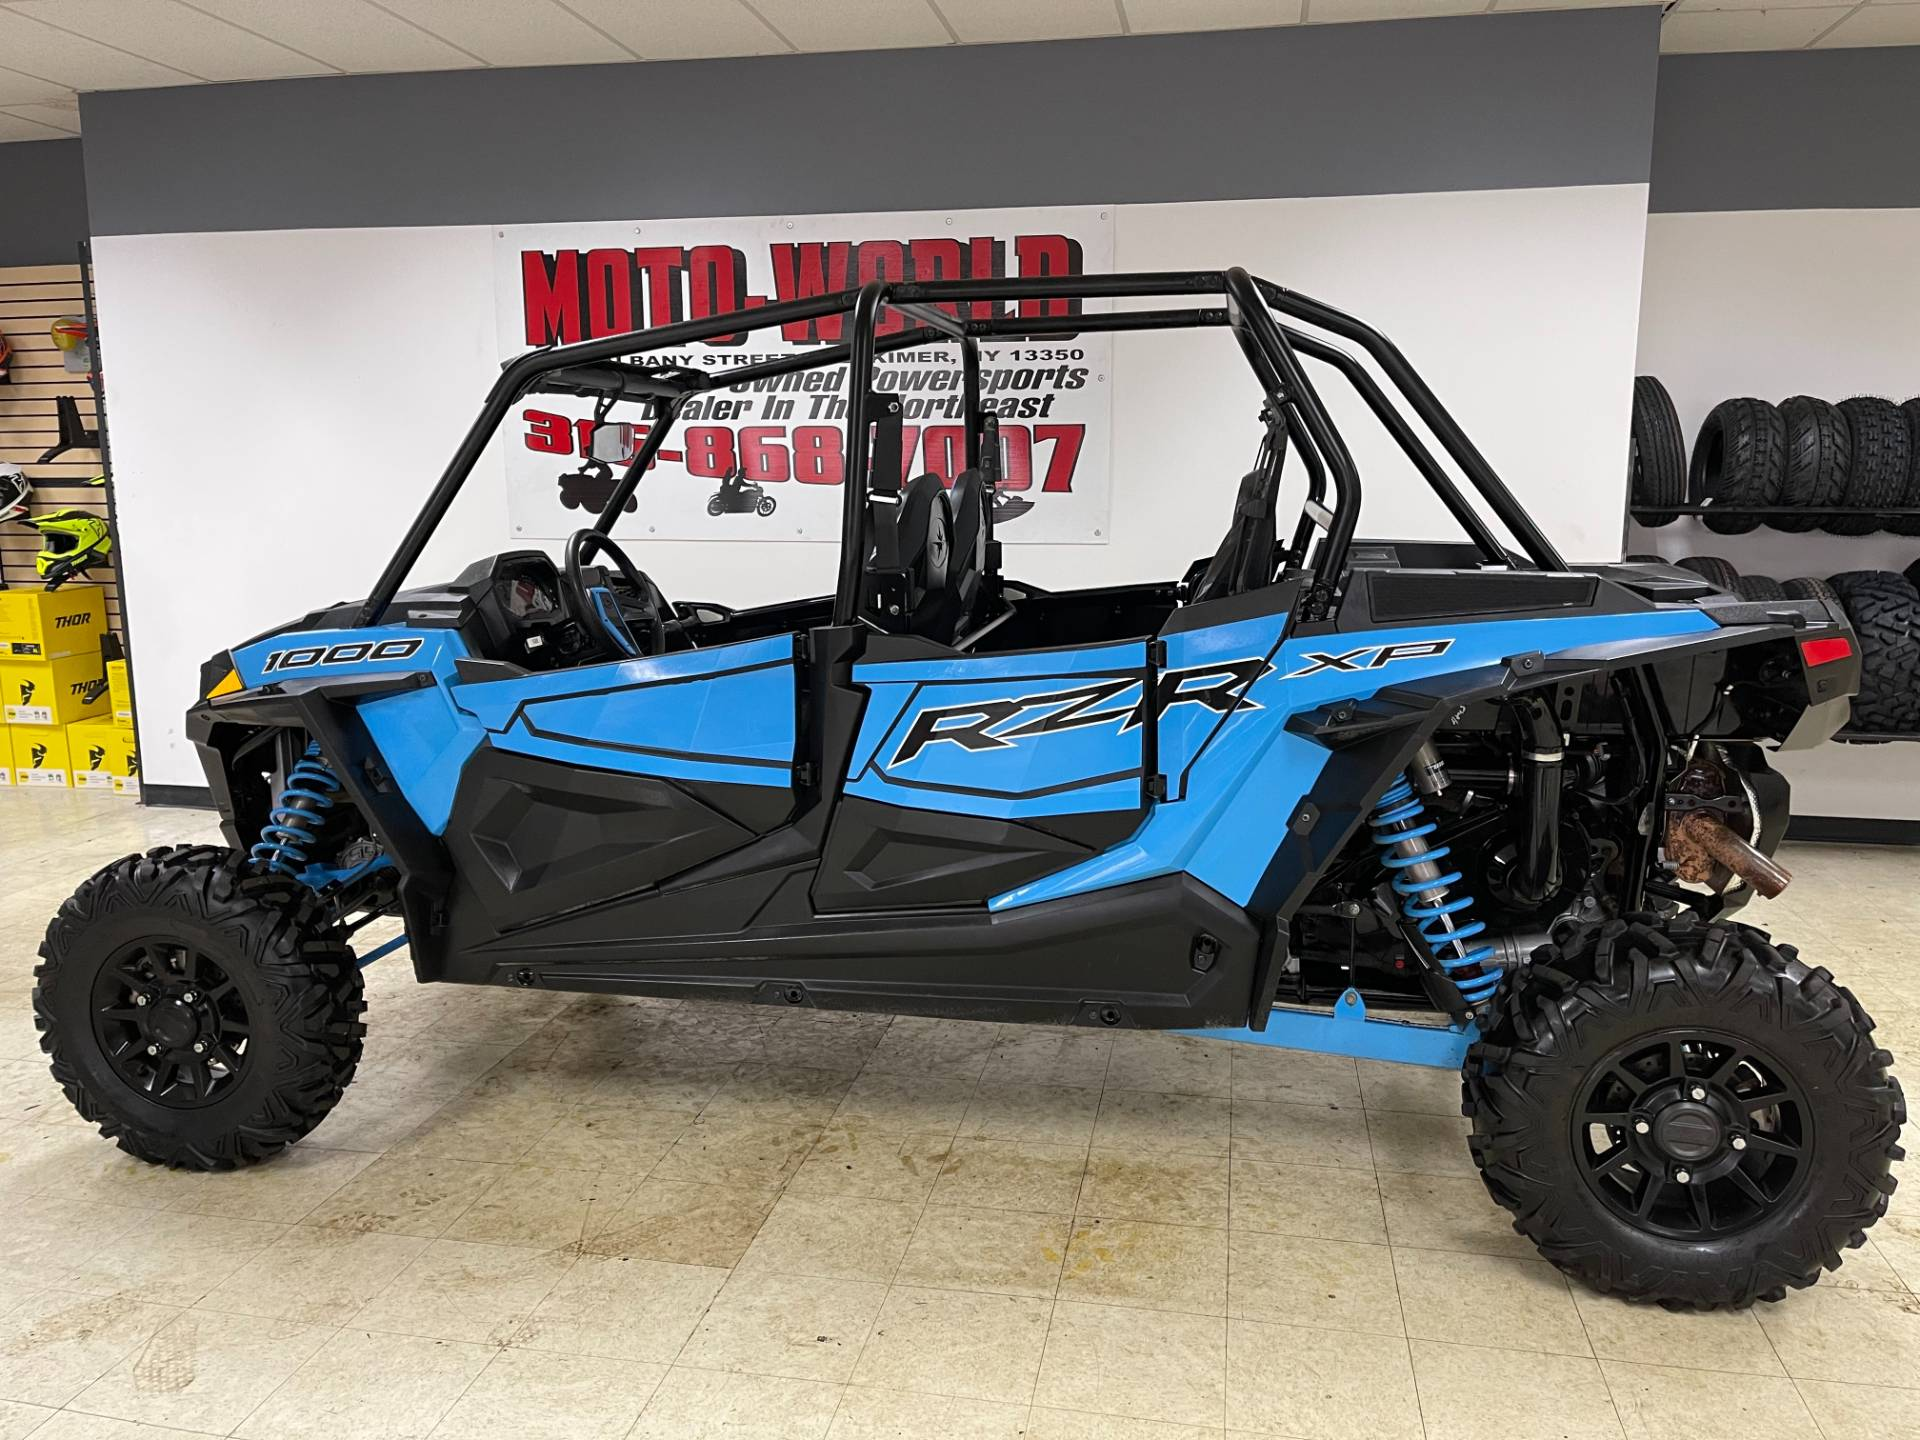 2020 Polaris RZR XP 4 1000 in Herkimer, New York - Photo 1